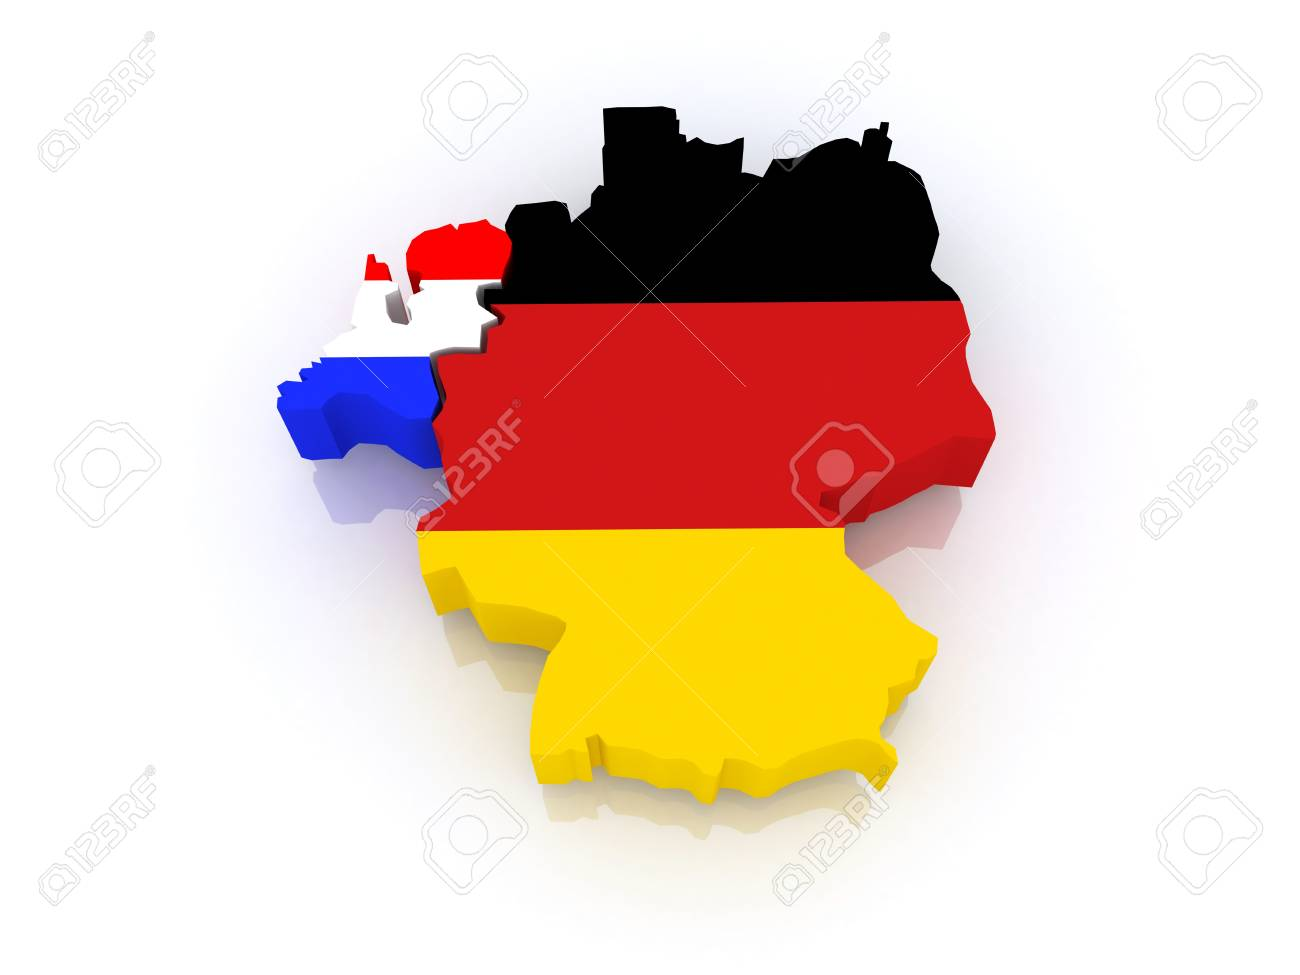 Map Of Germany And The Netherlands.Map Of Germany And The Netherlands 3d